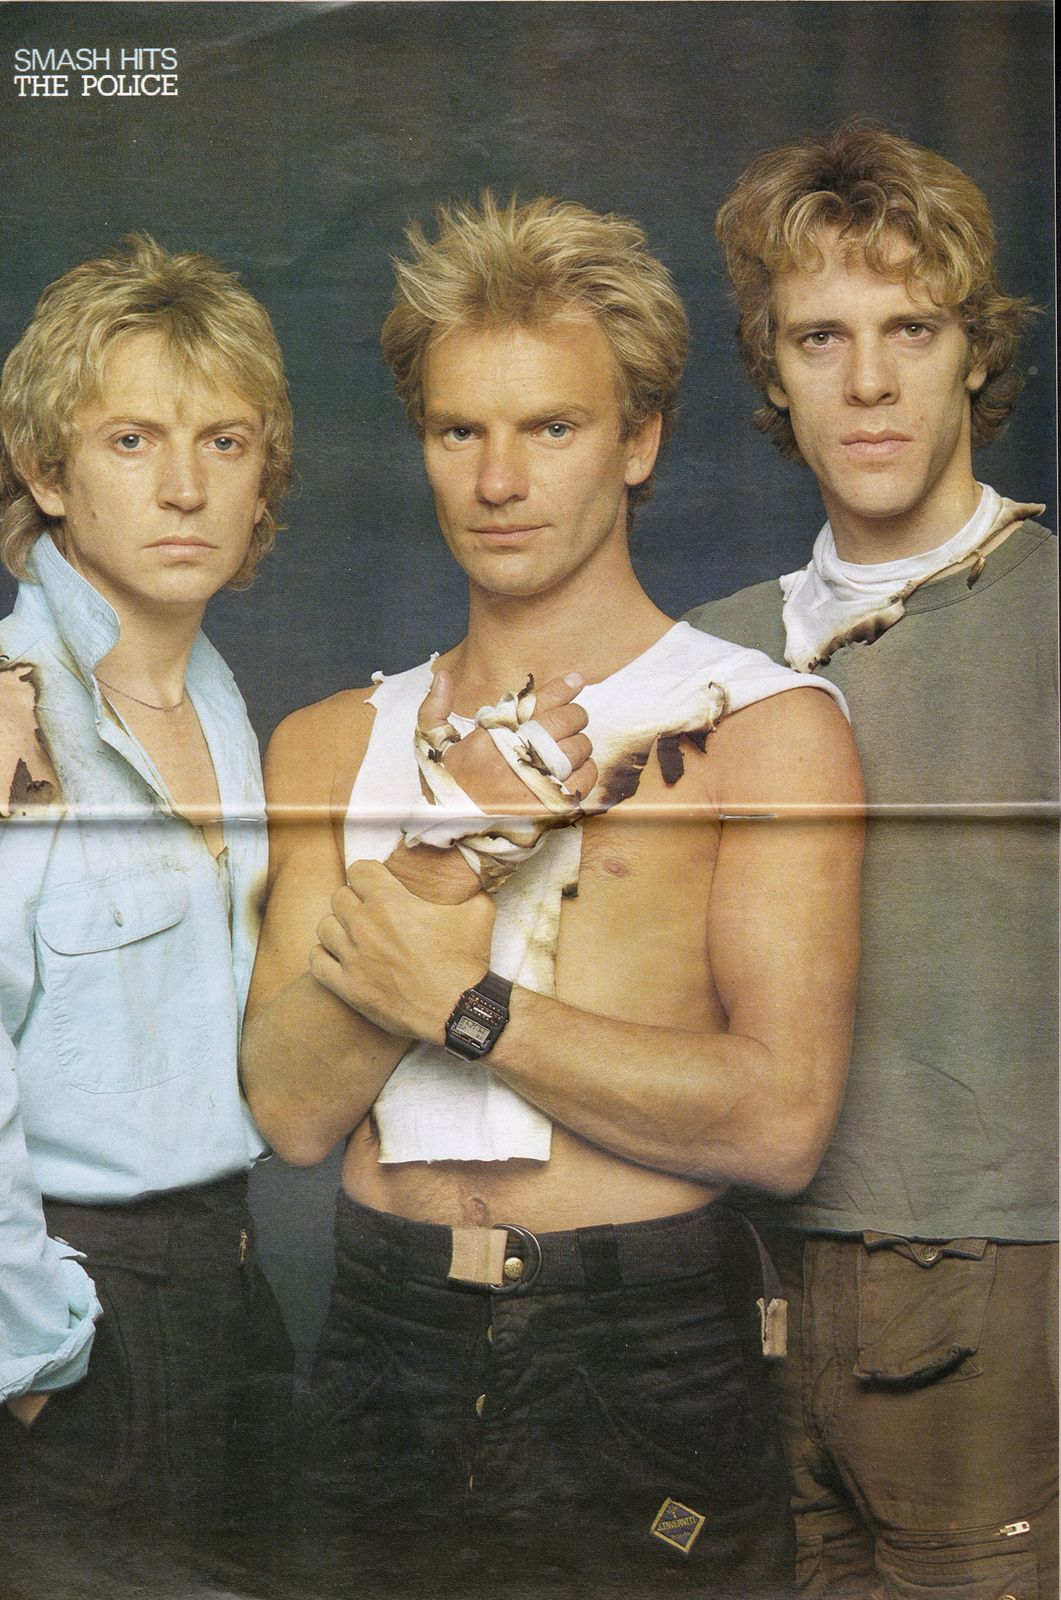 THE POLICE, smash hits, 1983